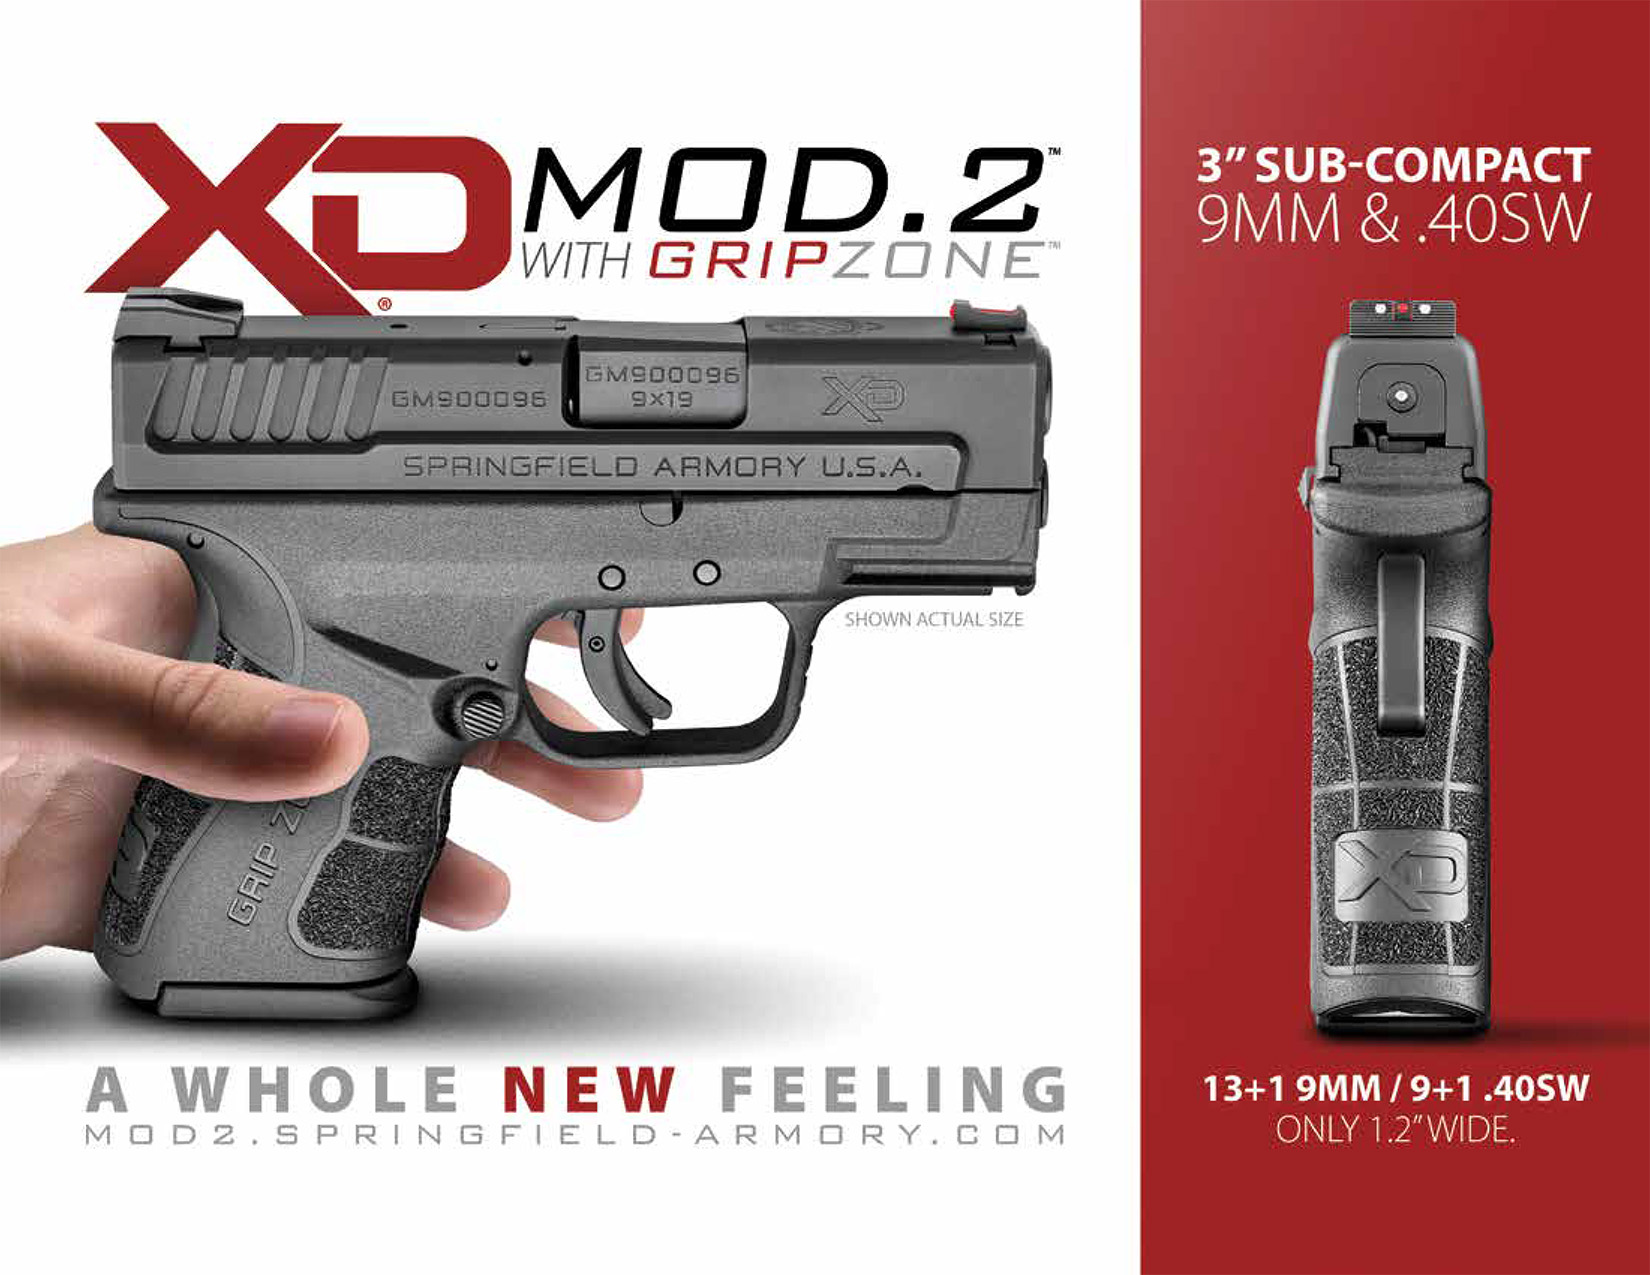 Click on the picture above to view the XD MOD.2 PDF